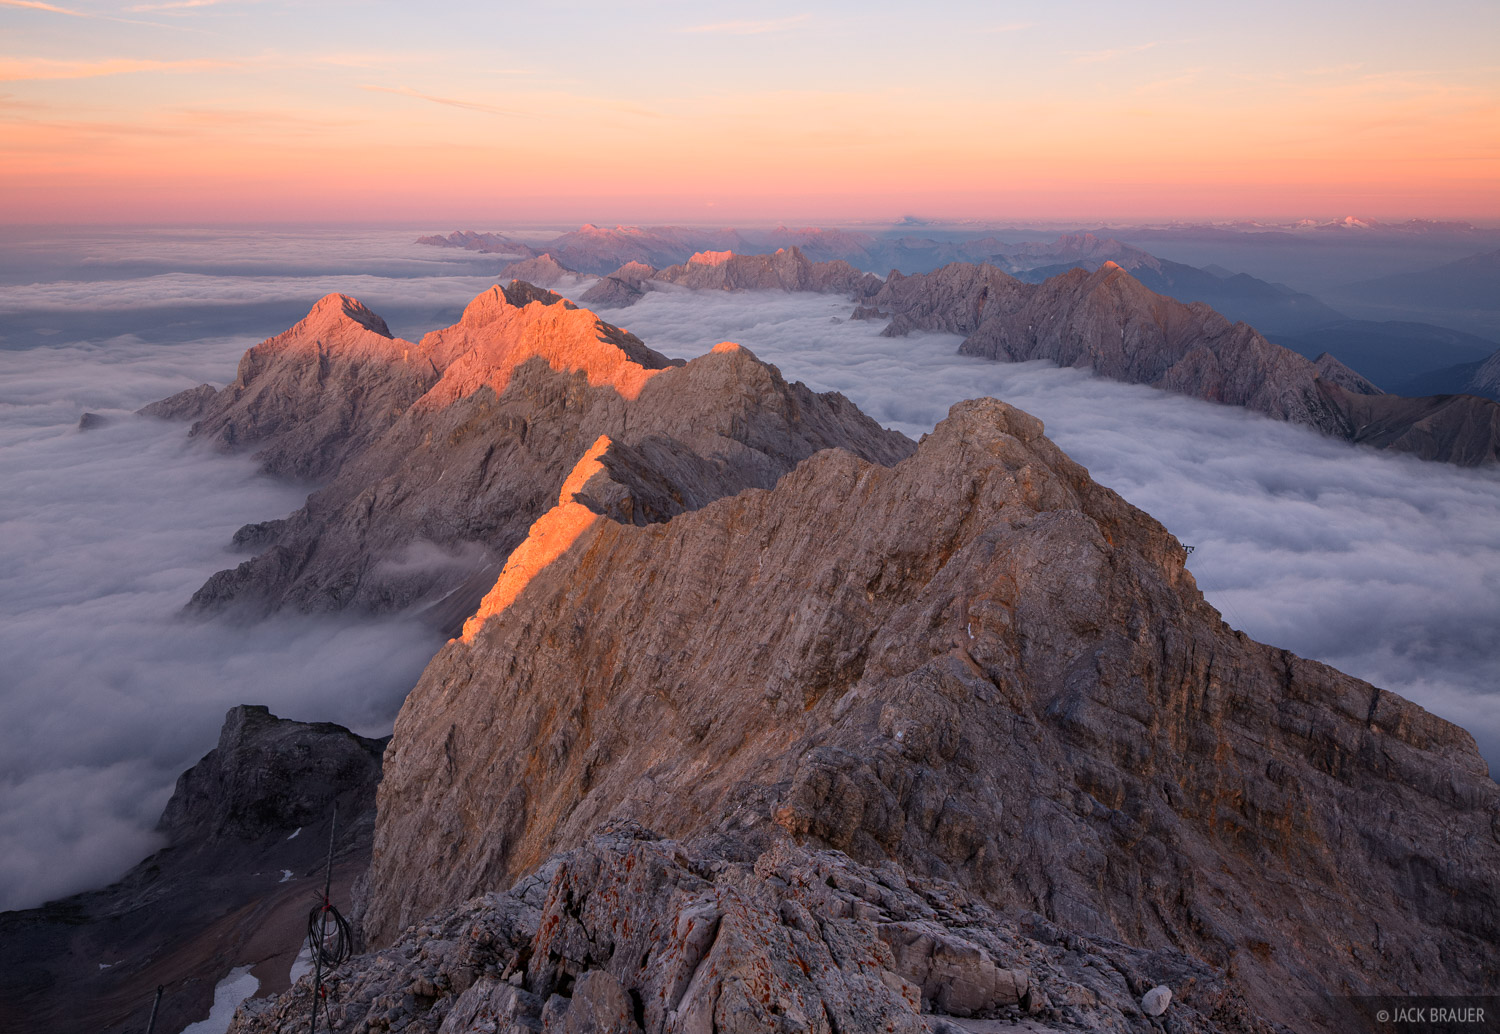 Zugspitze, Wettersteingebirge, Germany, summit, sunset, Alps, photo